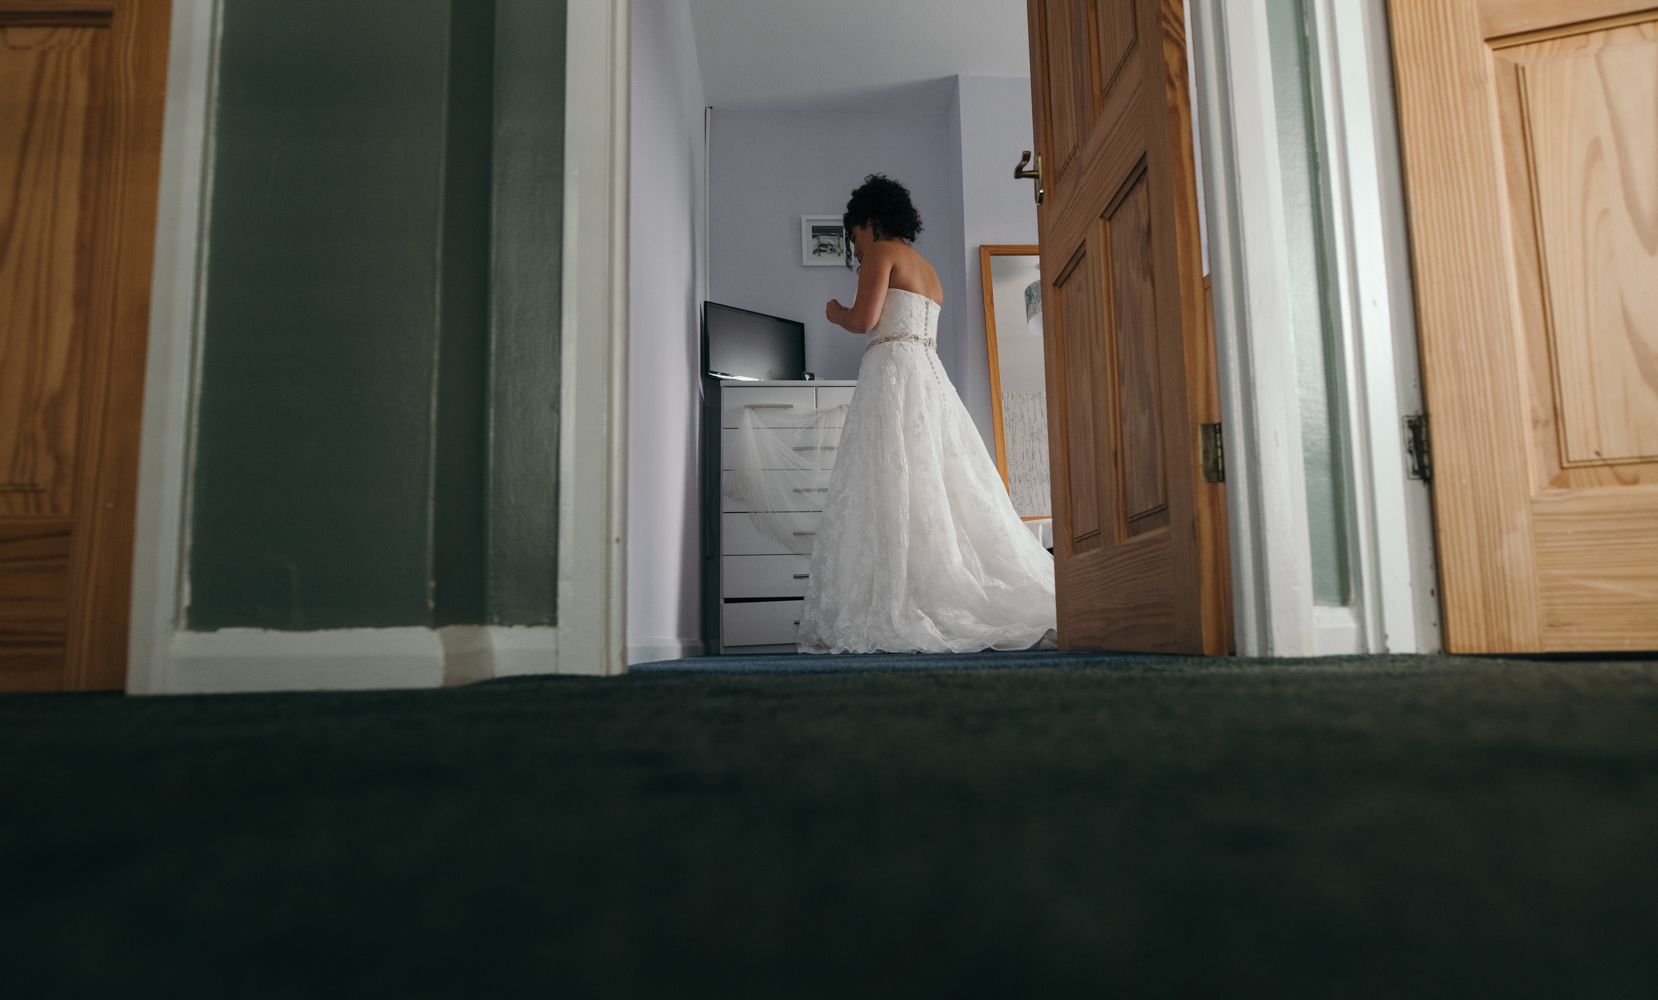 The bride getting into her wedding dress taken from the top stair looking back into the bedroom